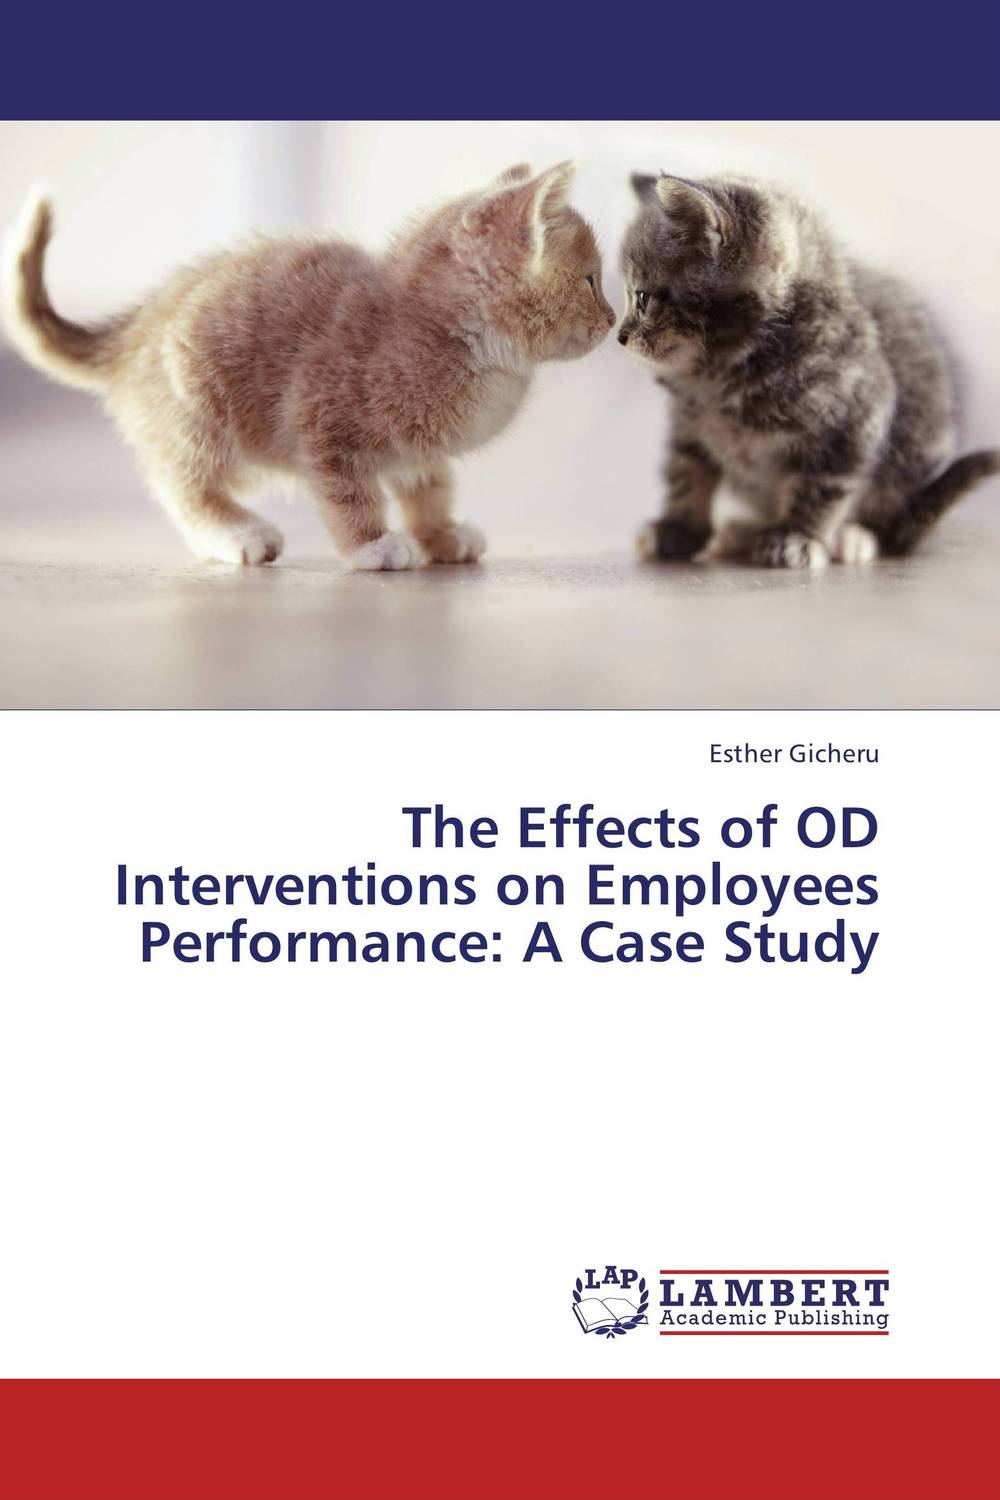 The Effects of OD Interventions on Employees Performance: A Case Study a case study of the use of bim and cobie for facility management